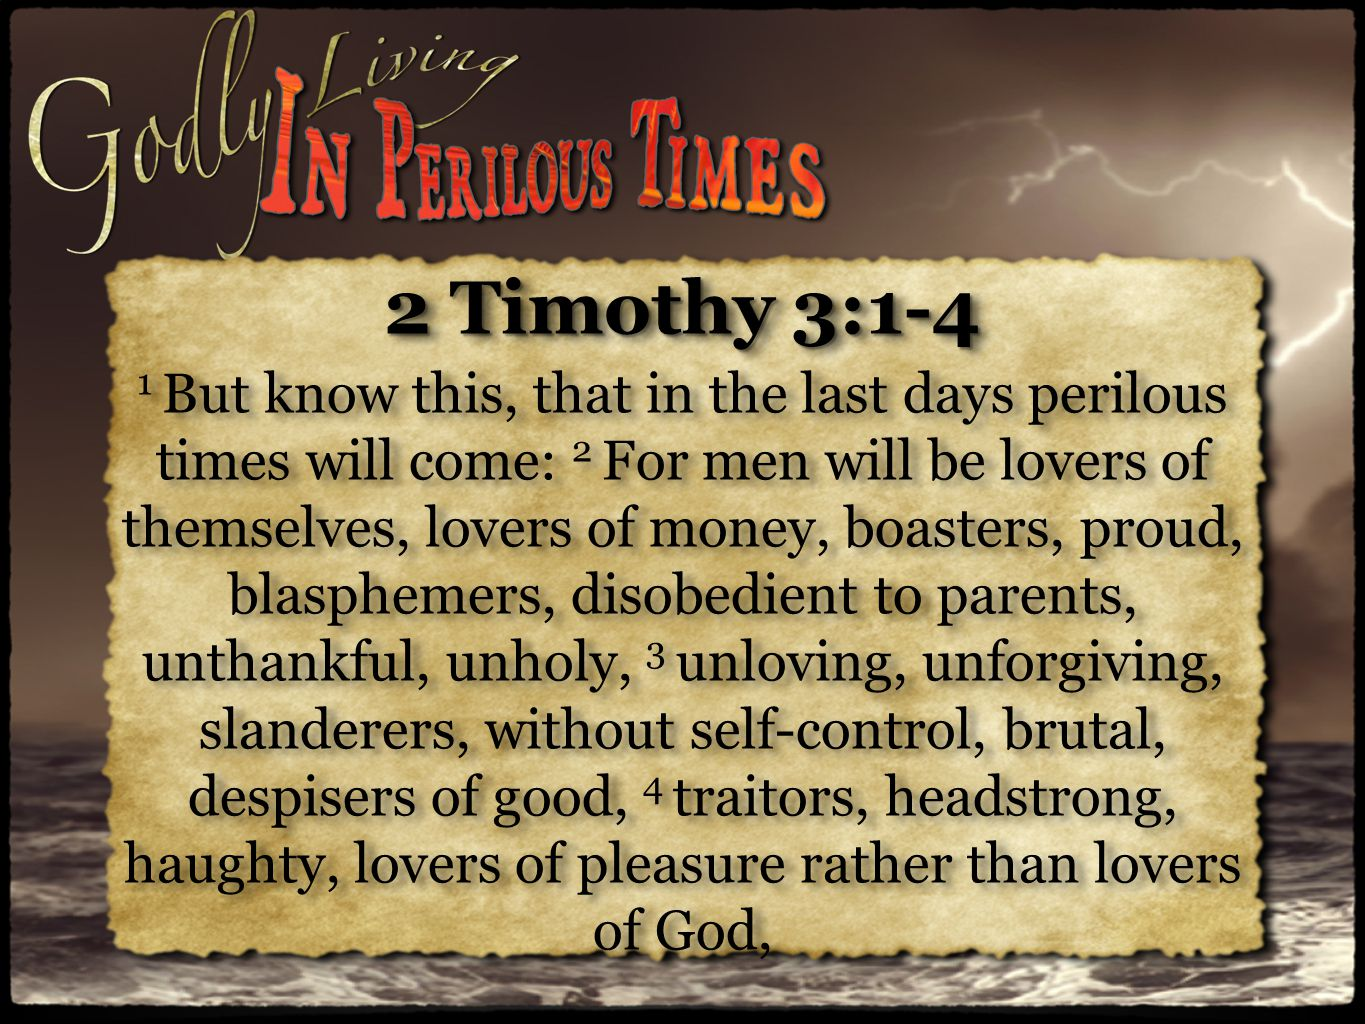 2 Timothy 3:1-4 1 But know this, that in the last days perilous times will come: 2 For men will be lovers of themselves, lovers of money, boasters, proud, blasphemers, disobedient to parents, unthankful, unholy, 3 unloving, unforgiving, slanderers, without self-control, brutal, despisers of good, 4 traitors, headstrong, haughty, lovers of pleasure rather than lovers of God, 2 Timothy 3:1-4 1 But know this, that in the last days perilous times will come: 2 For men will be lovers of themselves, lovers of money, boasters, proud, blasphemers, disobedient to parents, unthankful, unholy, 3 unloving, unforgiving, slanderers, without self-control, brutal, despisers of good, 4 traitors, headstrong, haughty, lovers of pleasure rather than lovers of God,